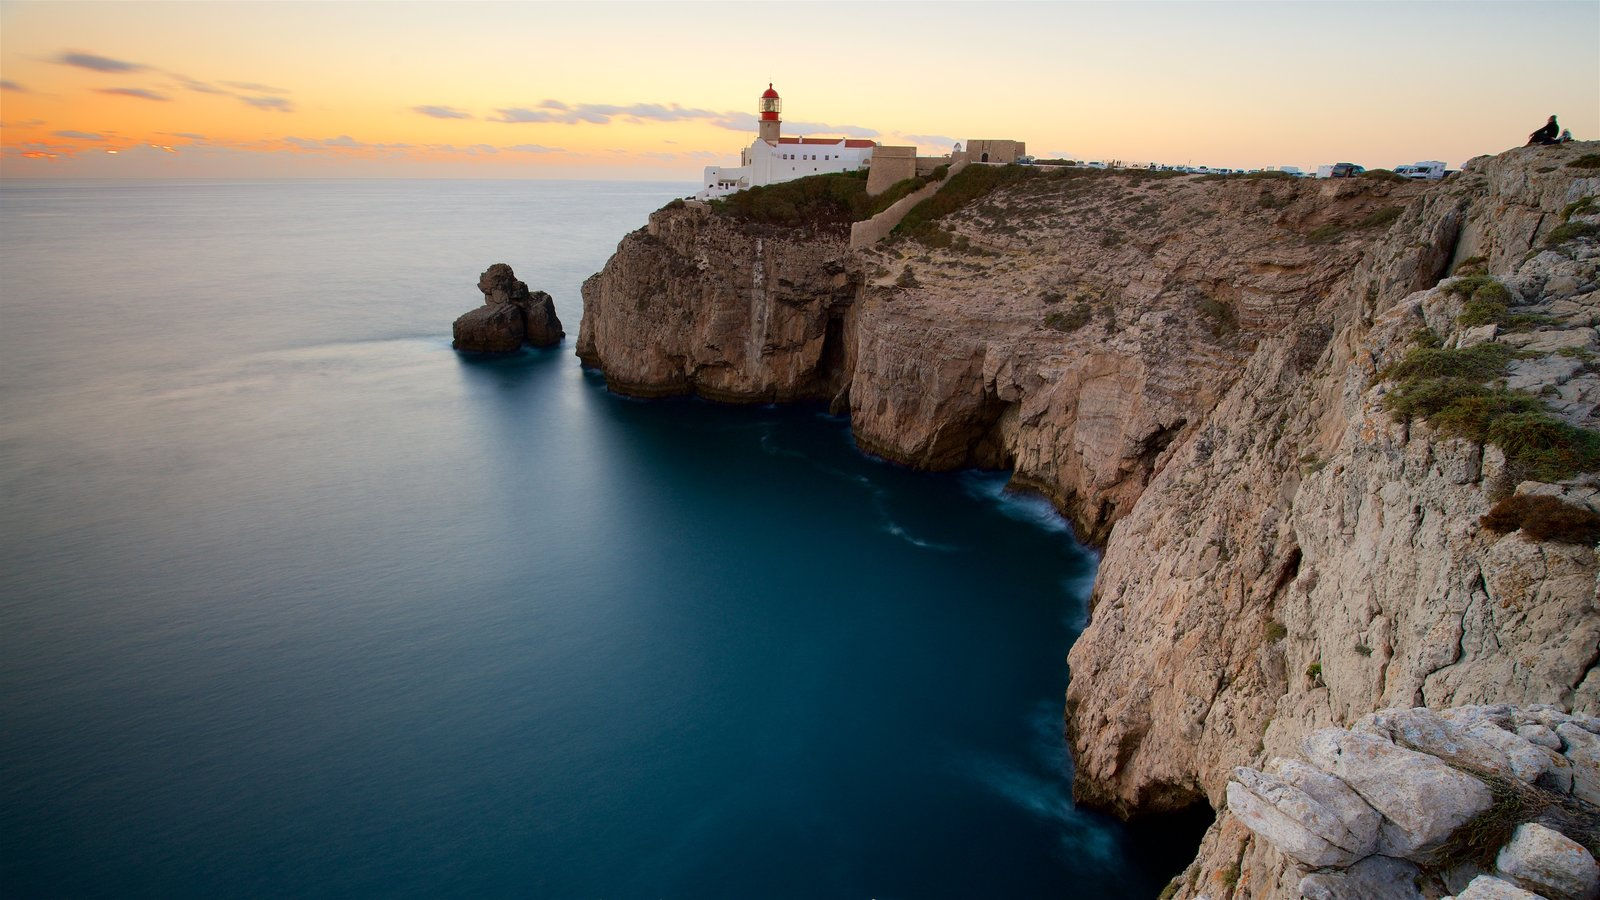 Cape St. Vincent Lighthouse featuring a sunset, general coastal views and a lighthouse